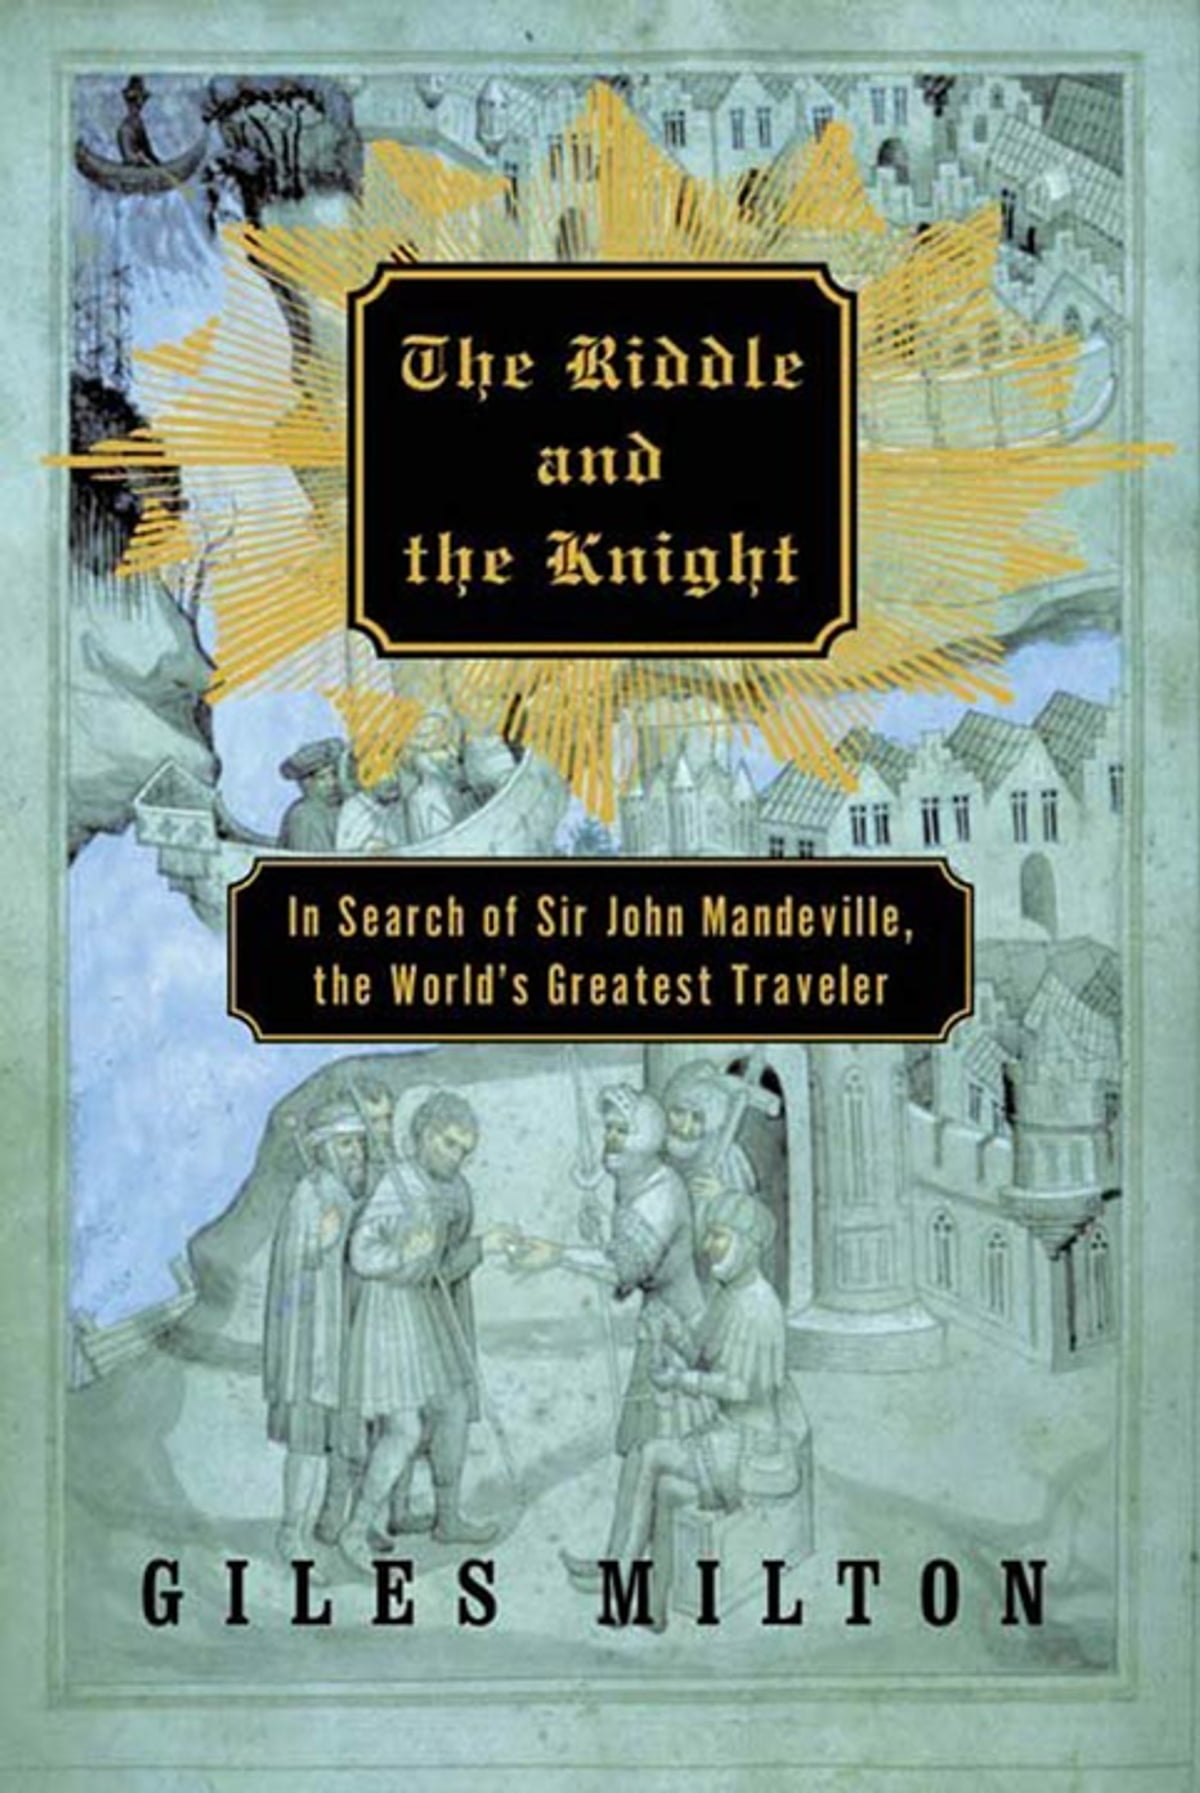 Download The Riddle And The Knight In Search Of Sir John Mandeville The Worlds Greatest Traveler By Giles Milton